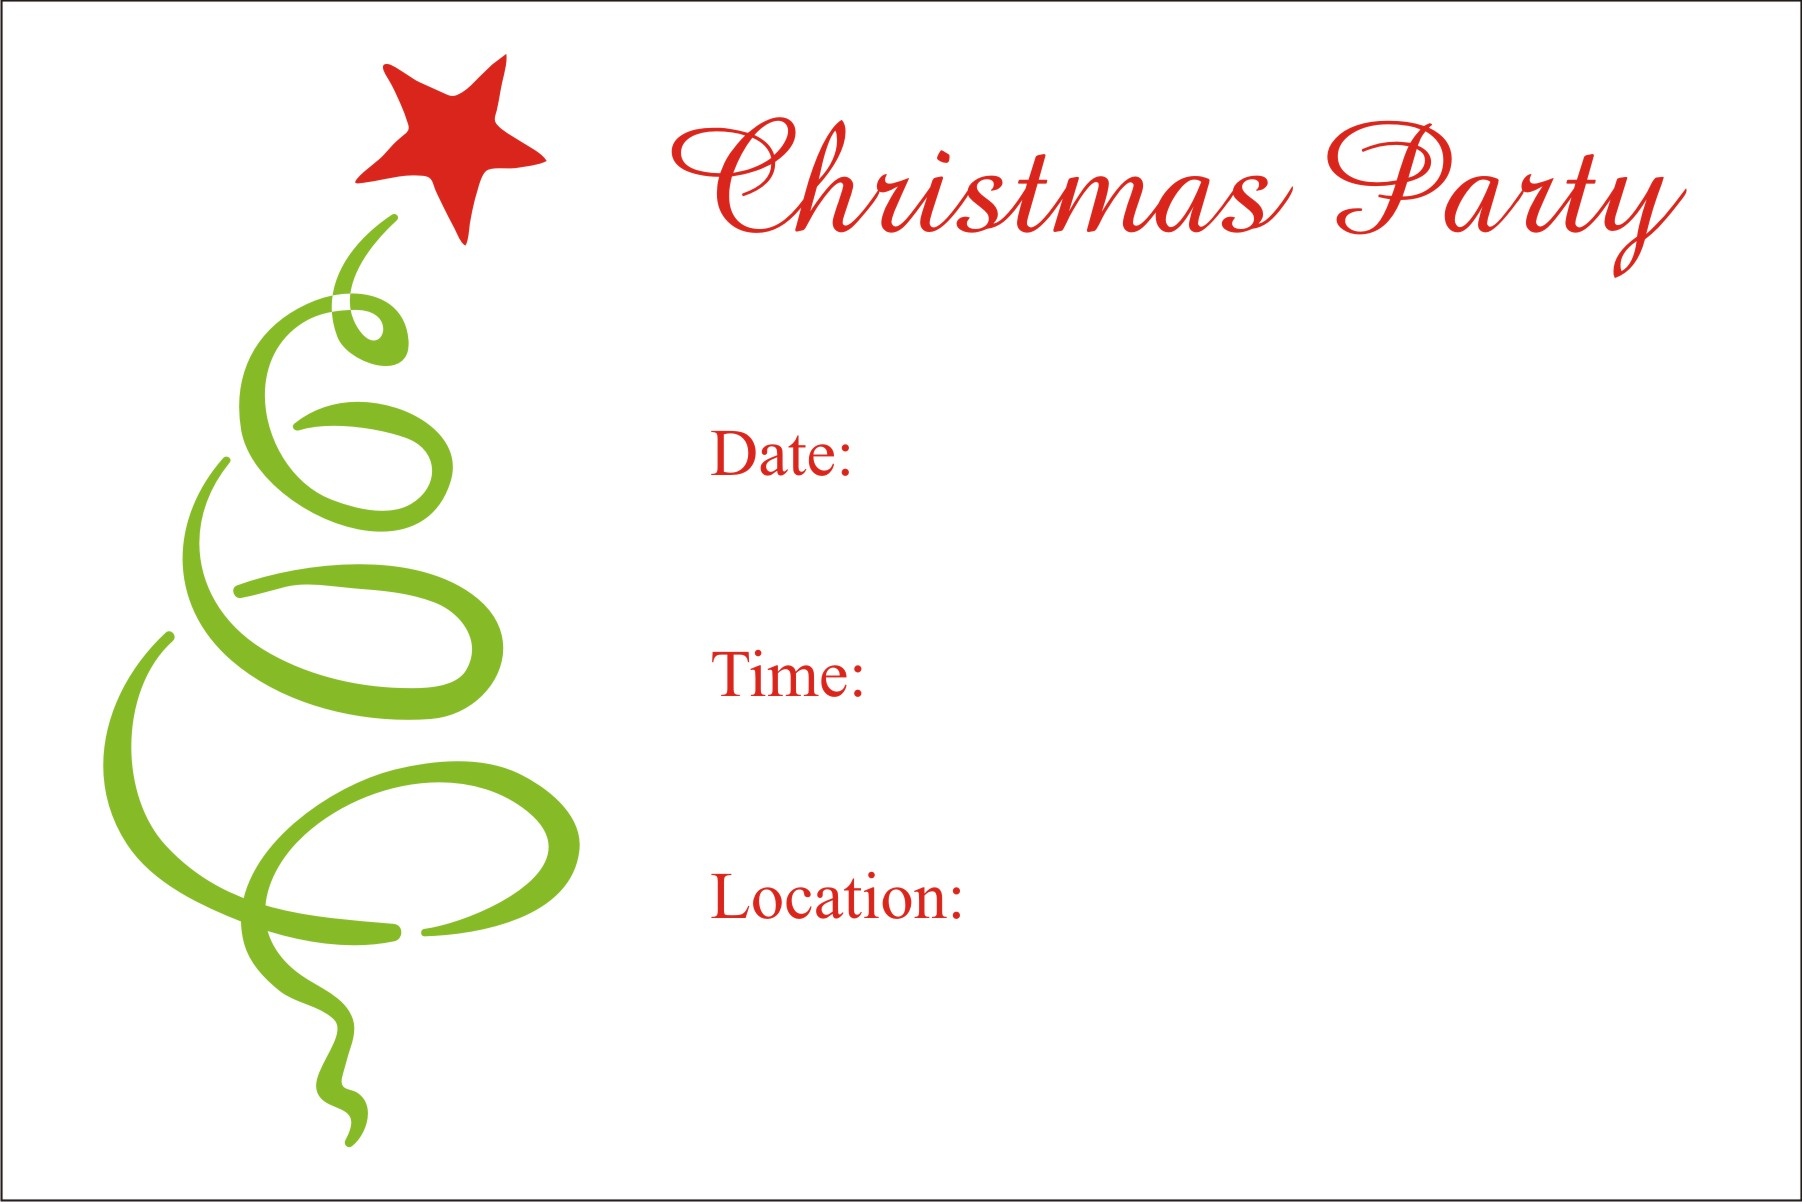 personalized party invites news - free printable christmas party, Party invitations